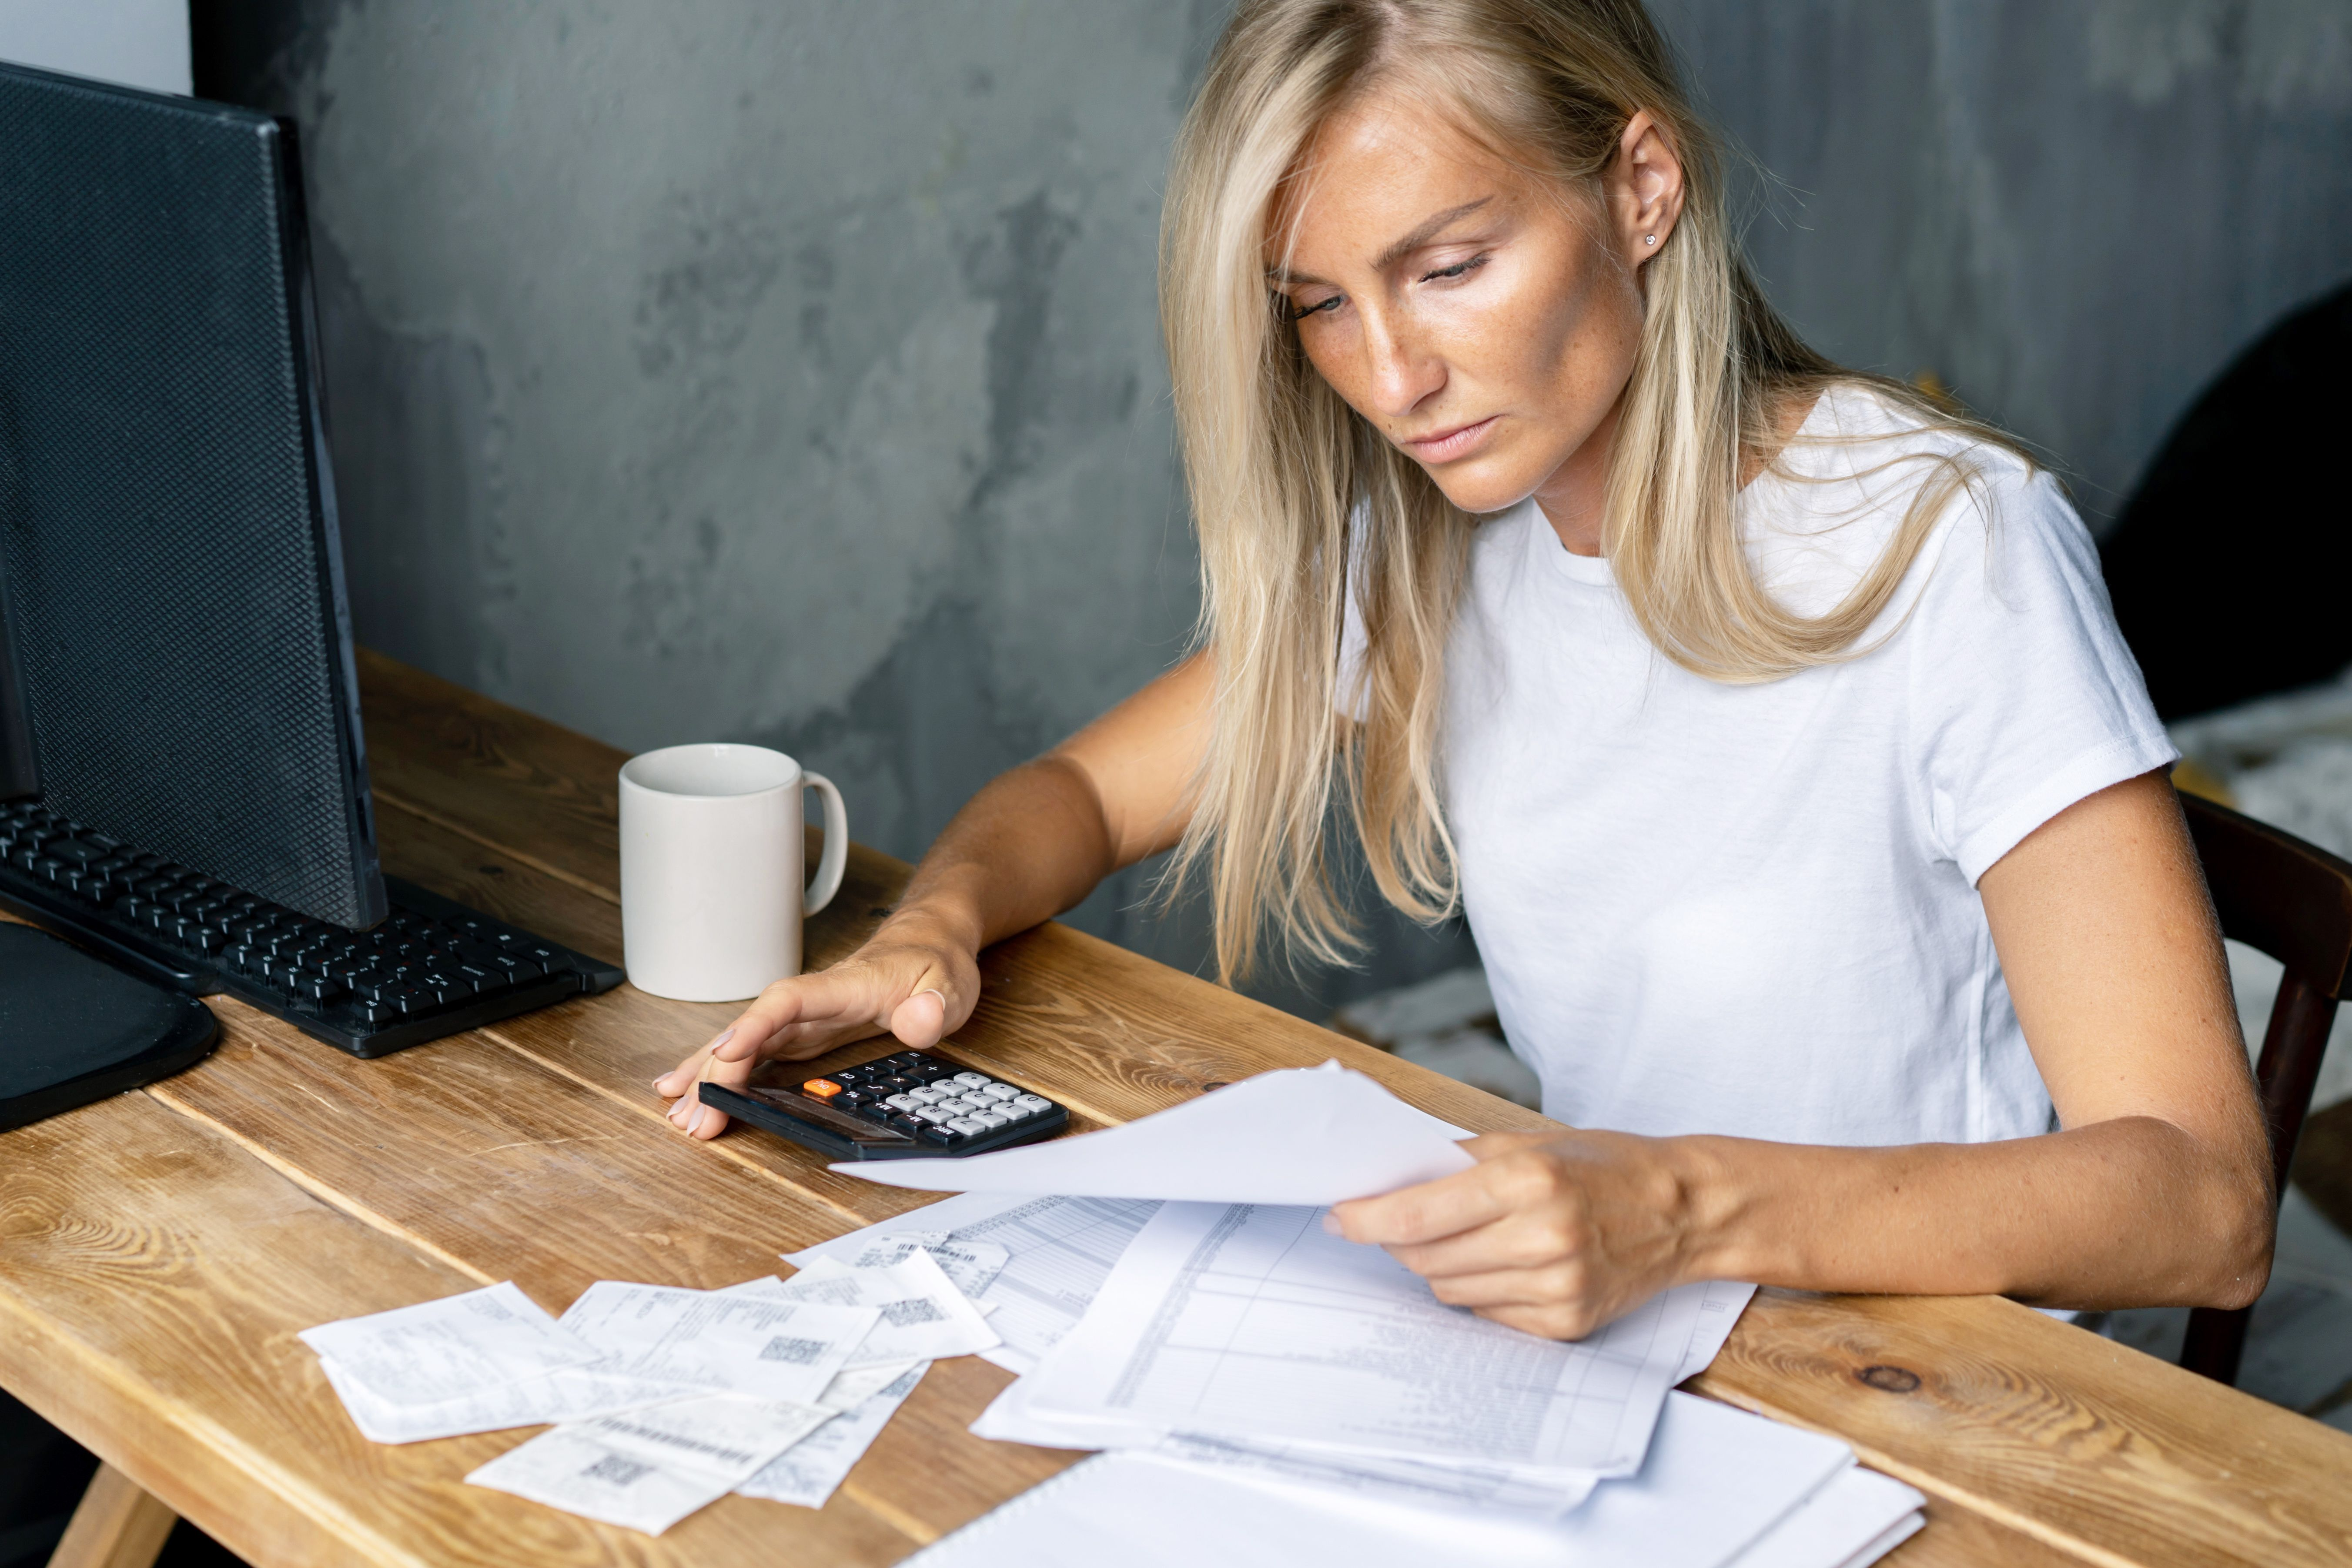 A blonde woman sits at a desk and works with bills and documents using a calculator